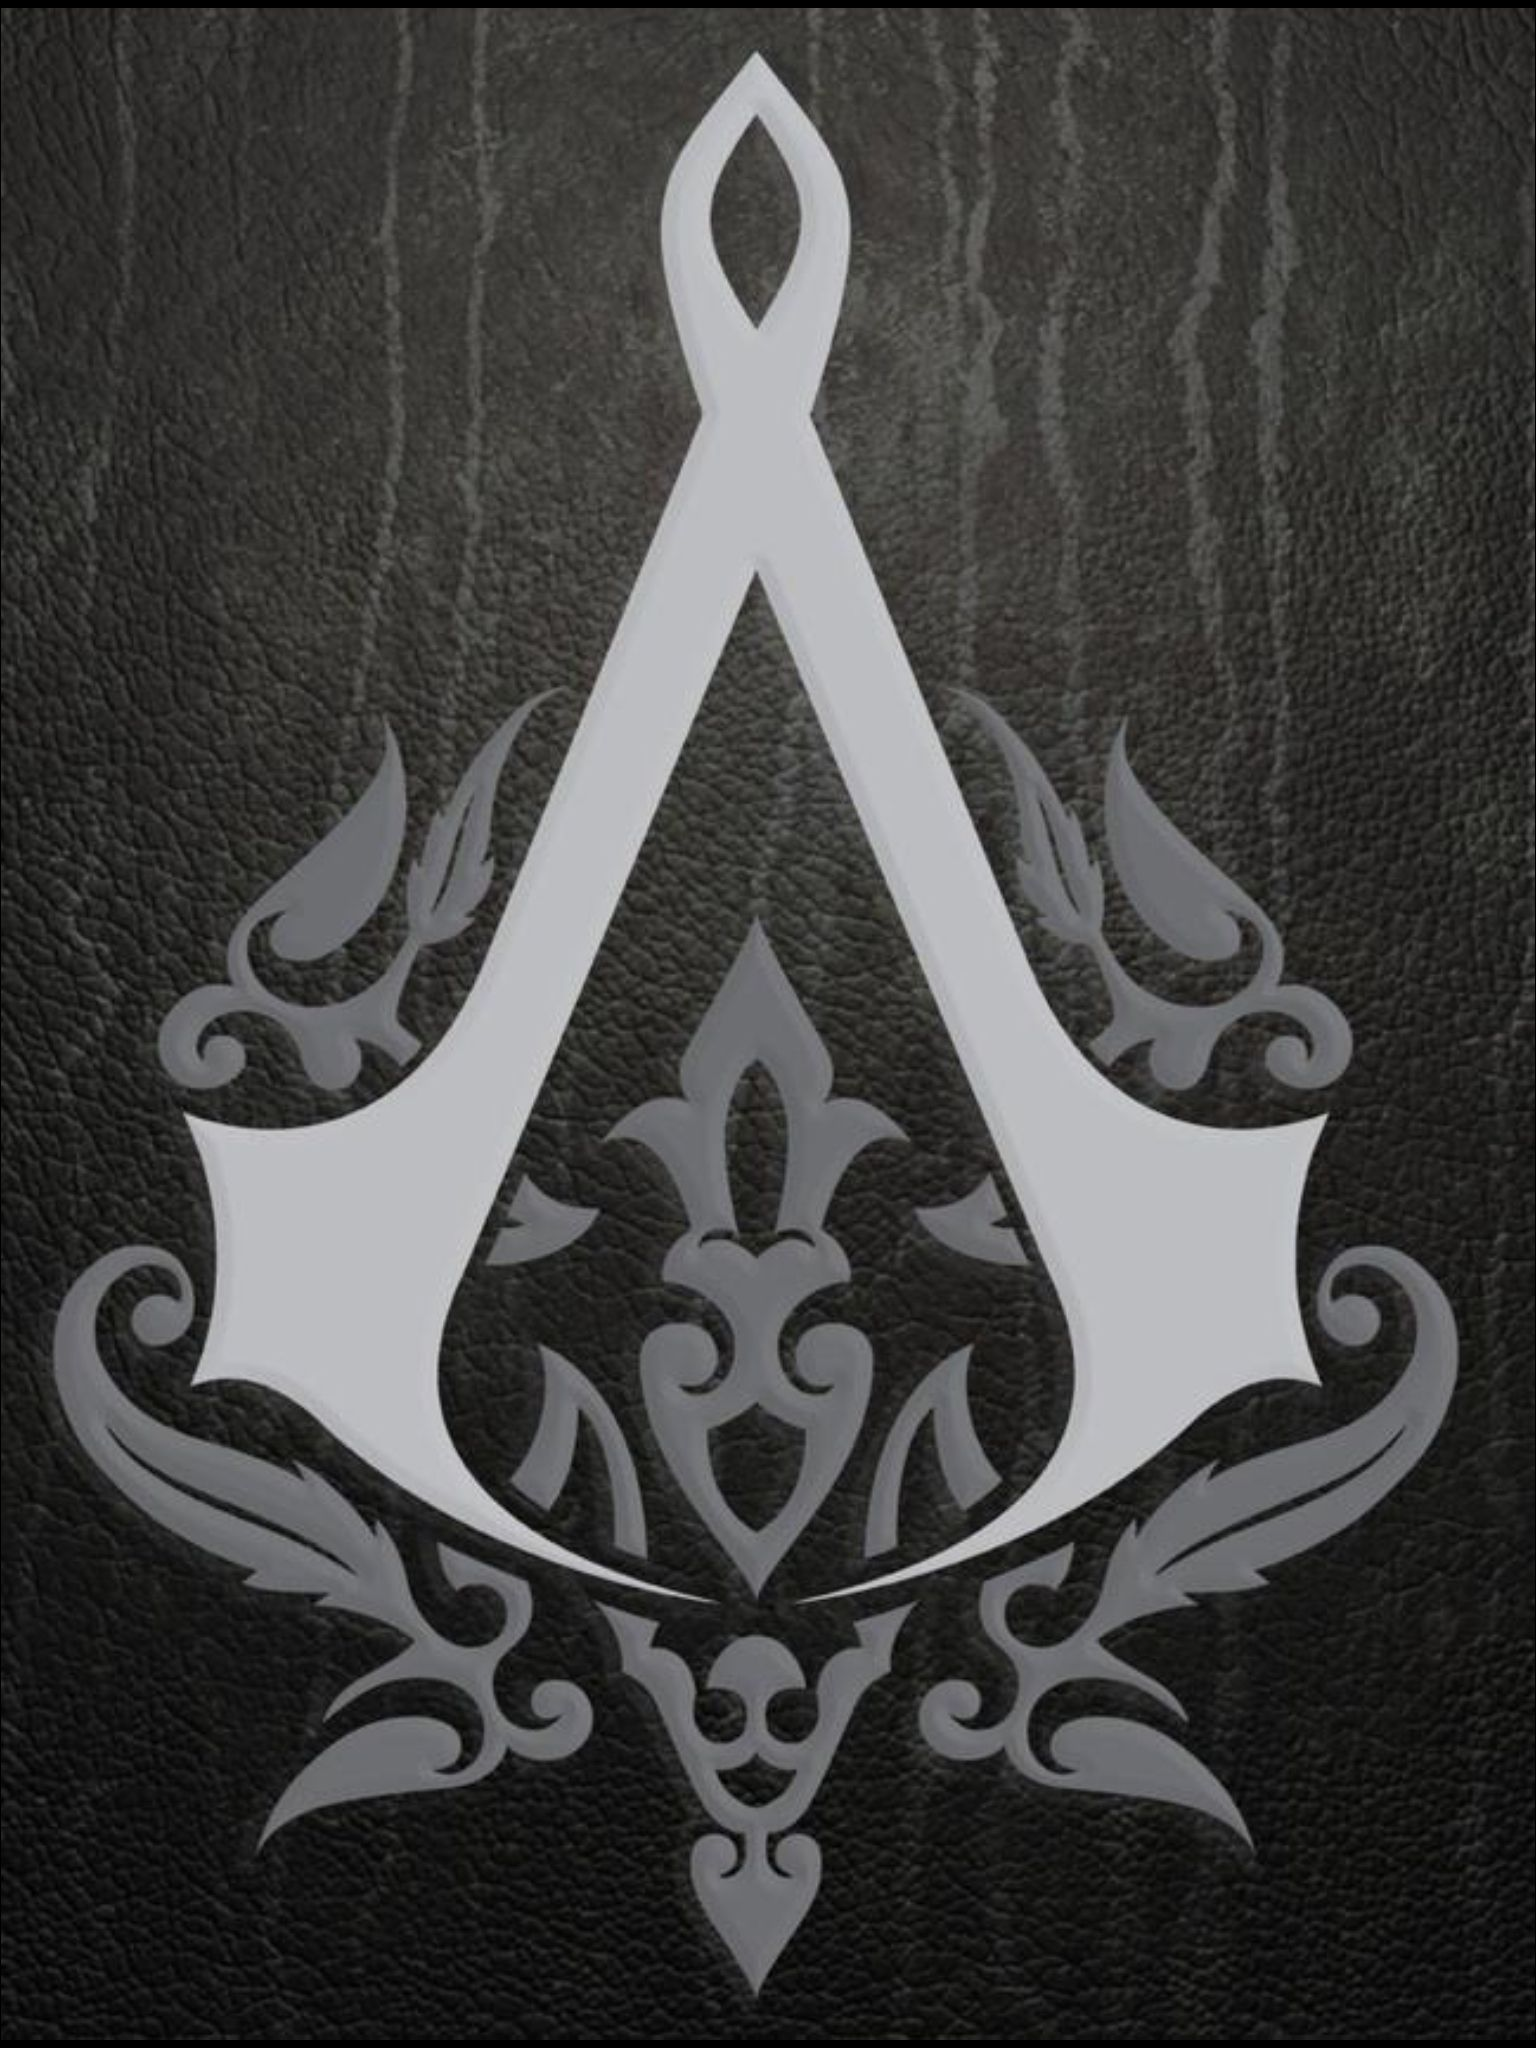 Can't wait to get this done, it's the assassin creed